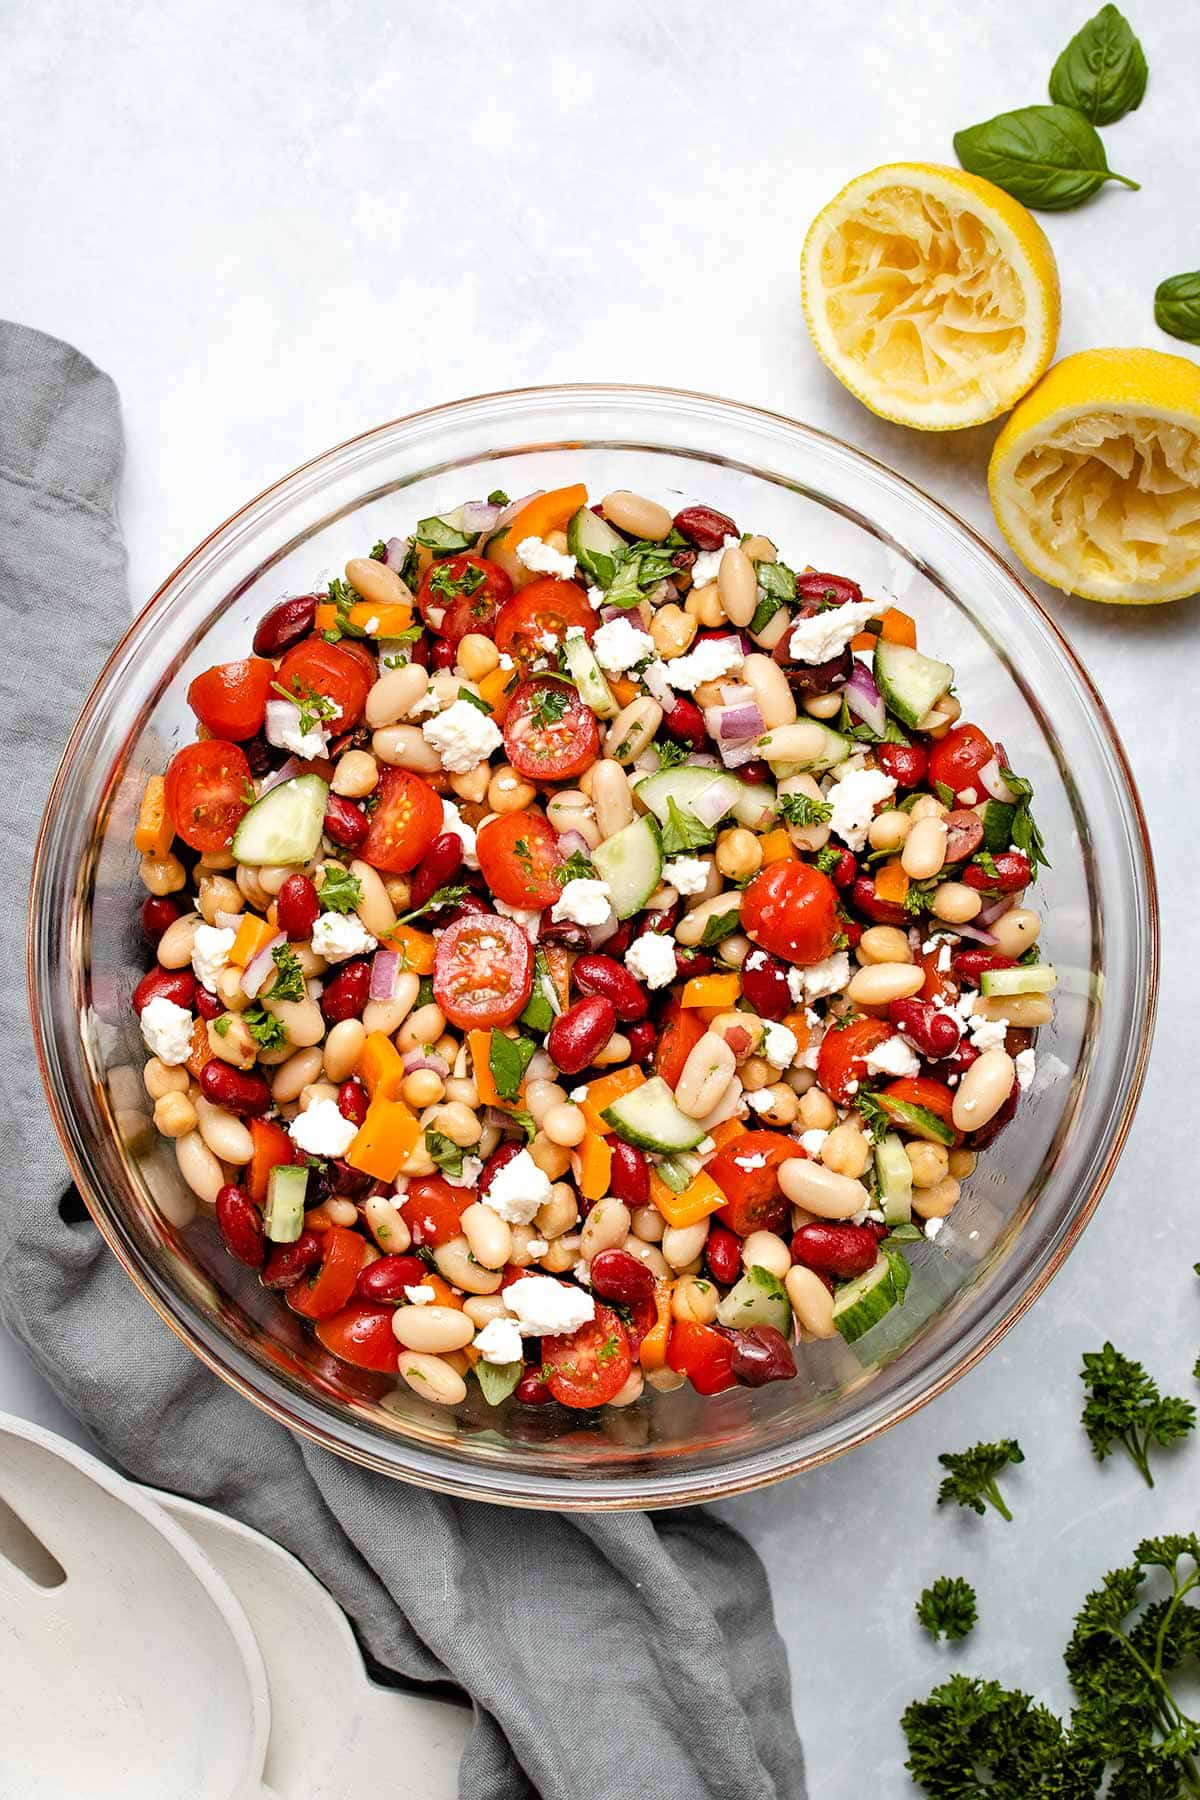 Mediterranean Bean Salad in a glass bowl next to a grey linen and squeezed lemon halves